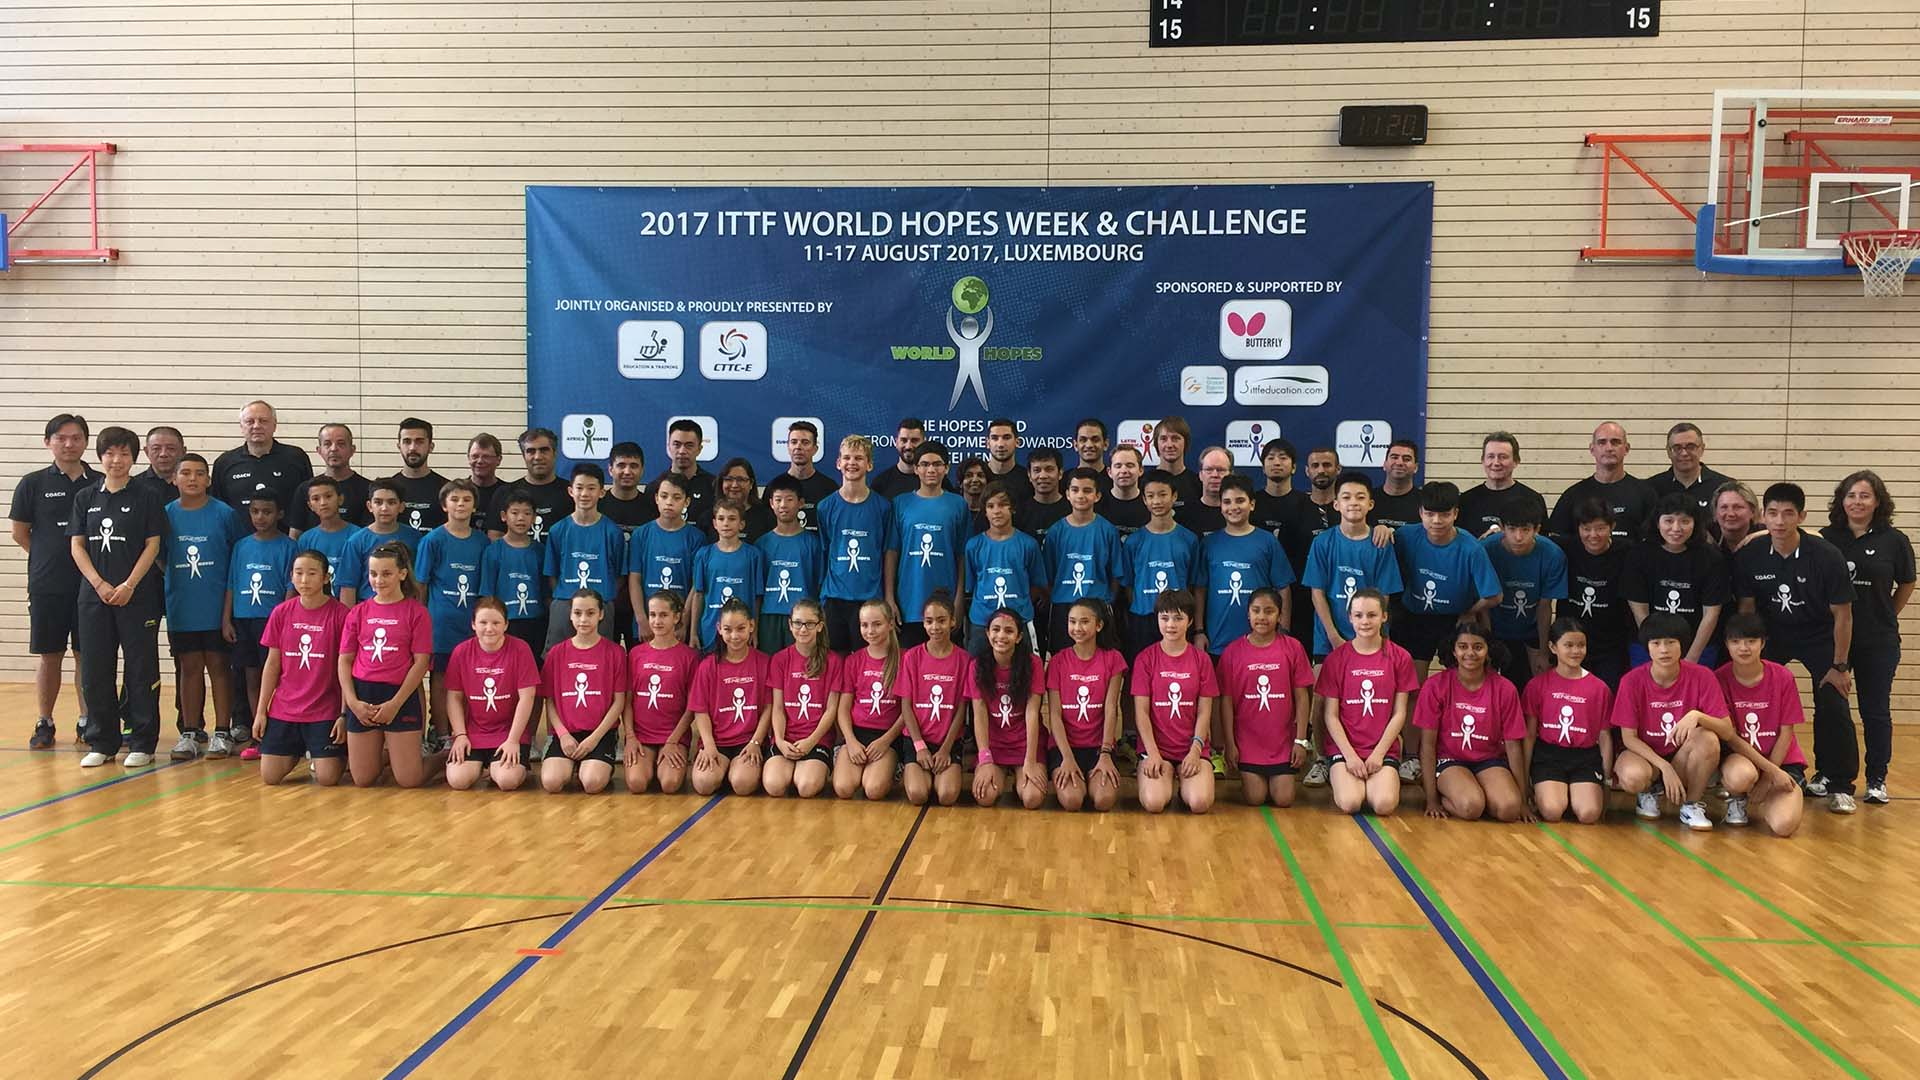 Bids open for 2018 ITTF World Hopes and Challenge